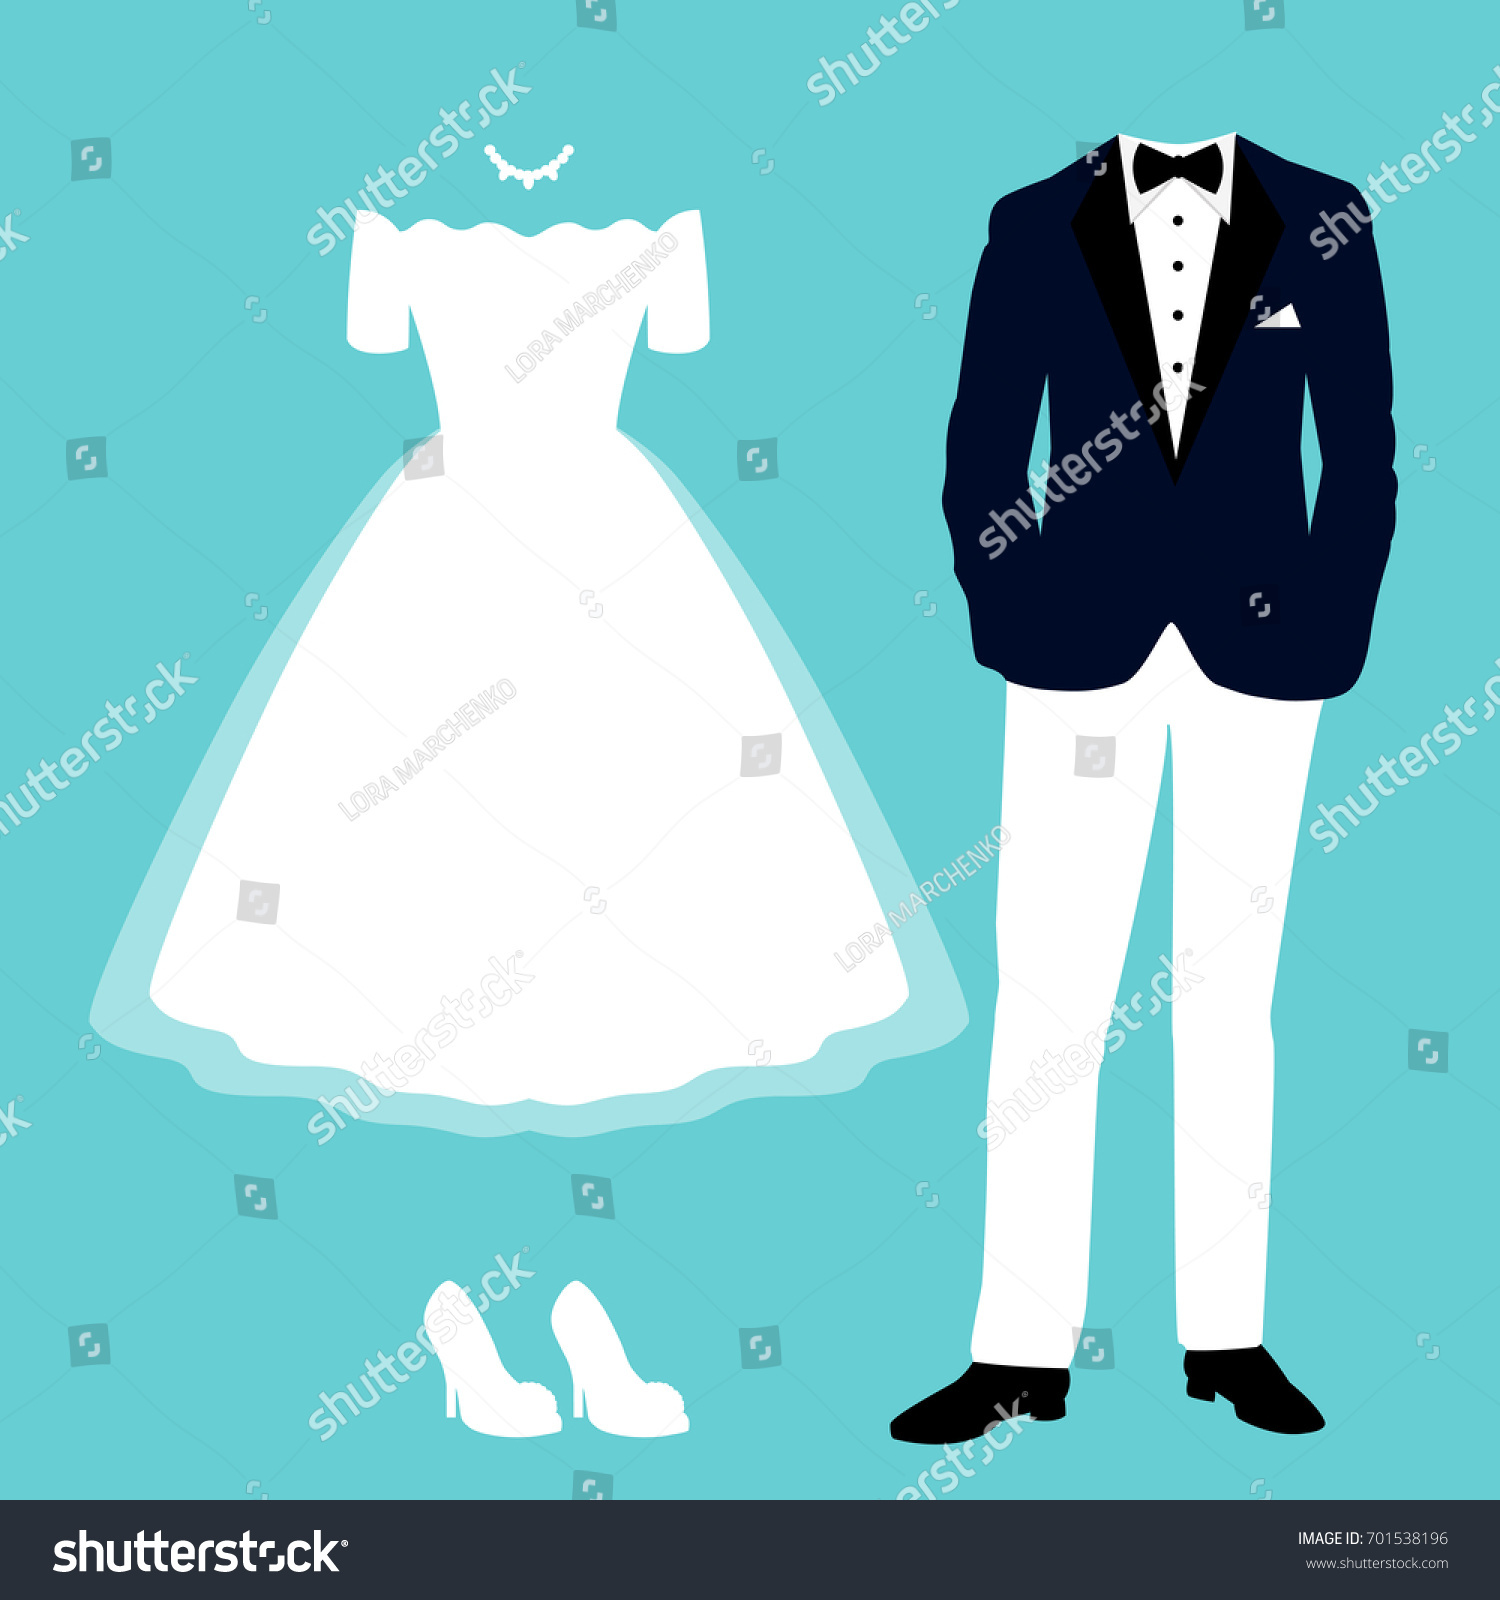 Wedding Card Clothes Bride Groom Clothing Stock Vector HD (Royalty ...